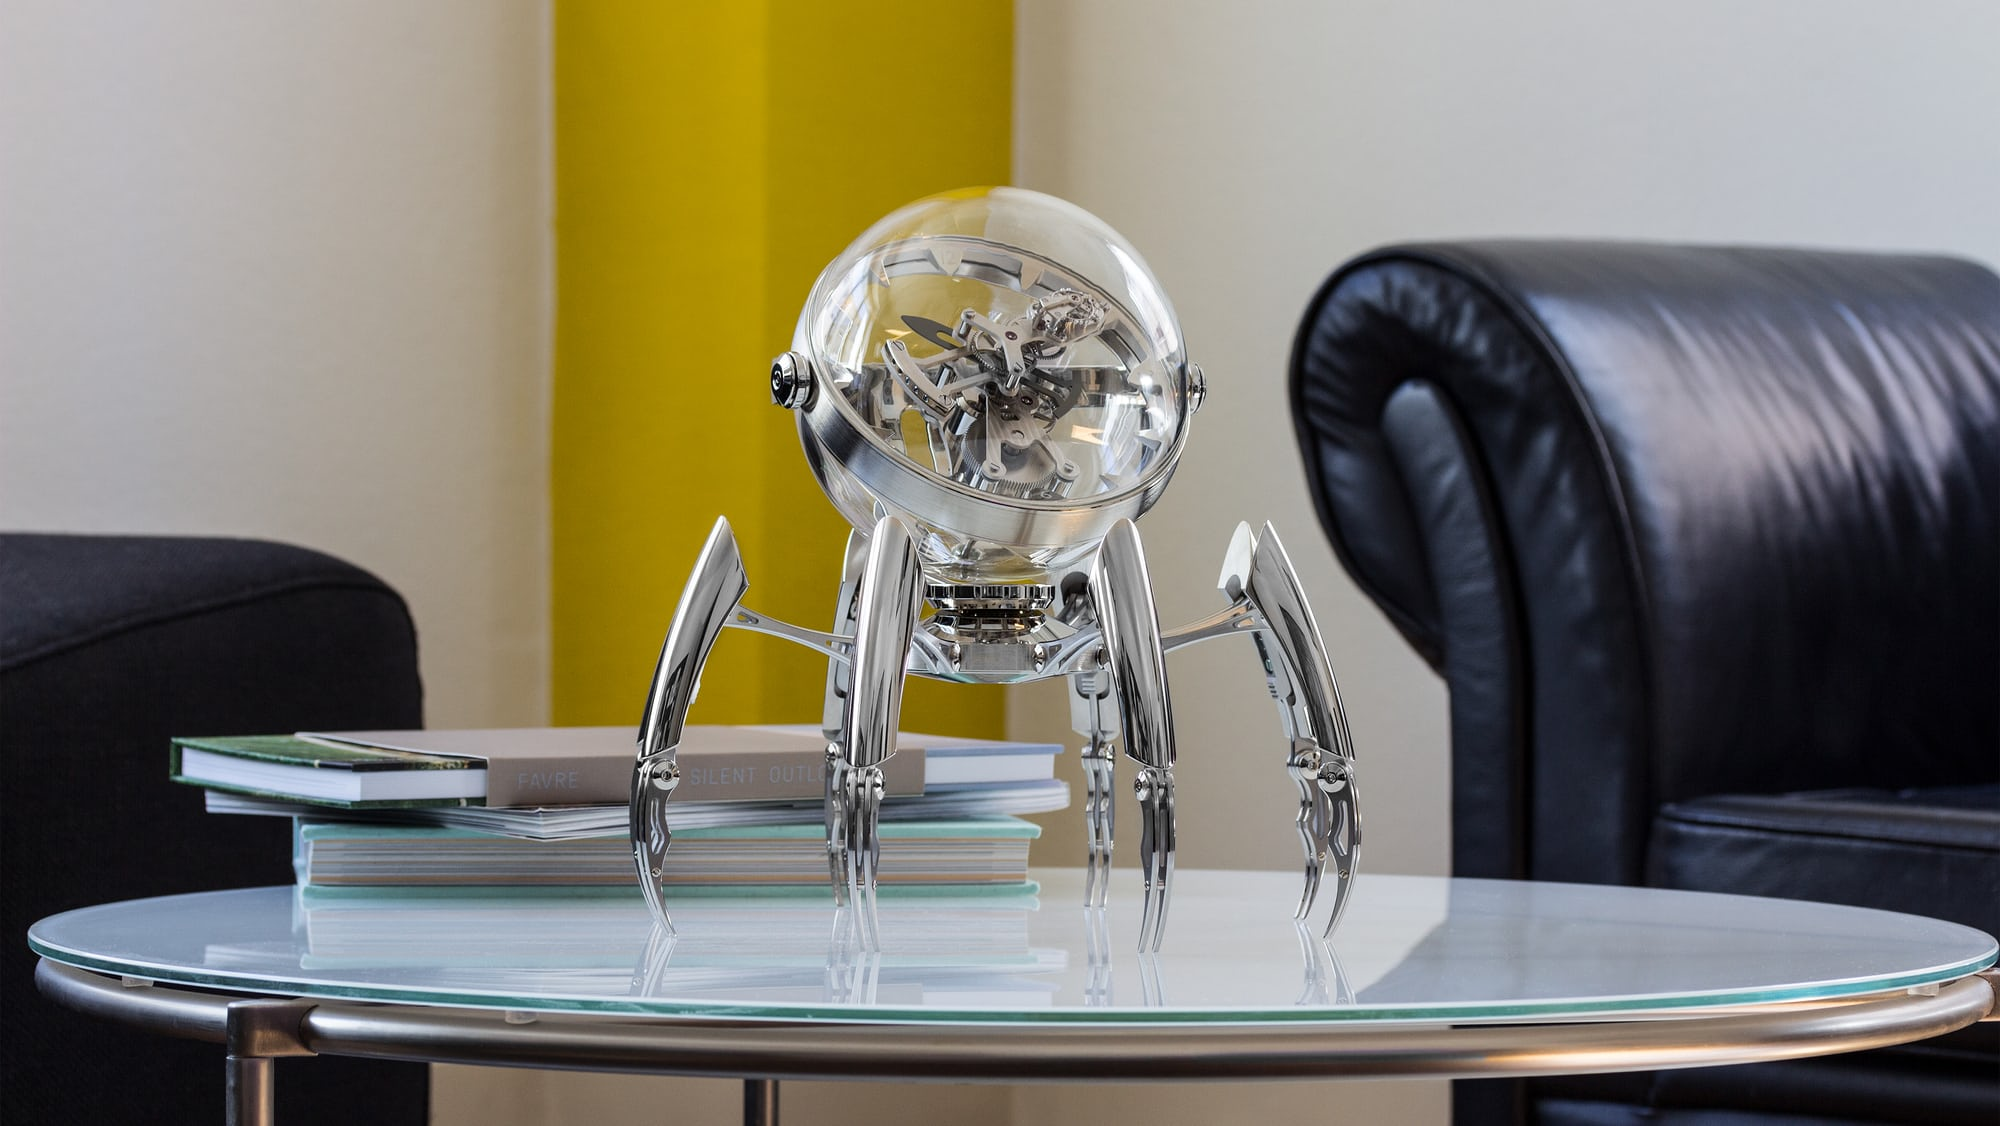 Hero.jpg?ixlib=rails 1.1 introducing: the mb&f and l'epe 1839 octopod clock Introducing: The MB&F And L'Epe 1839 Octopod Clock hero